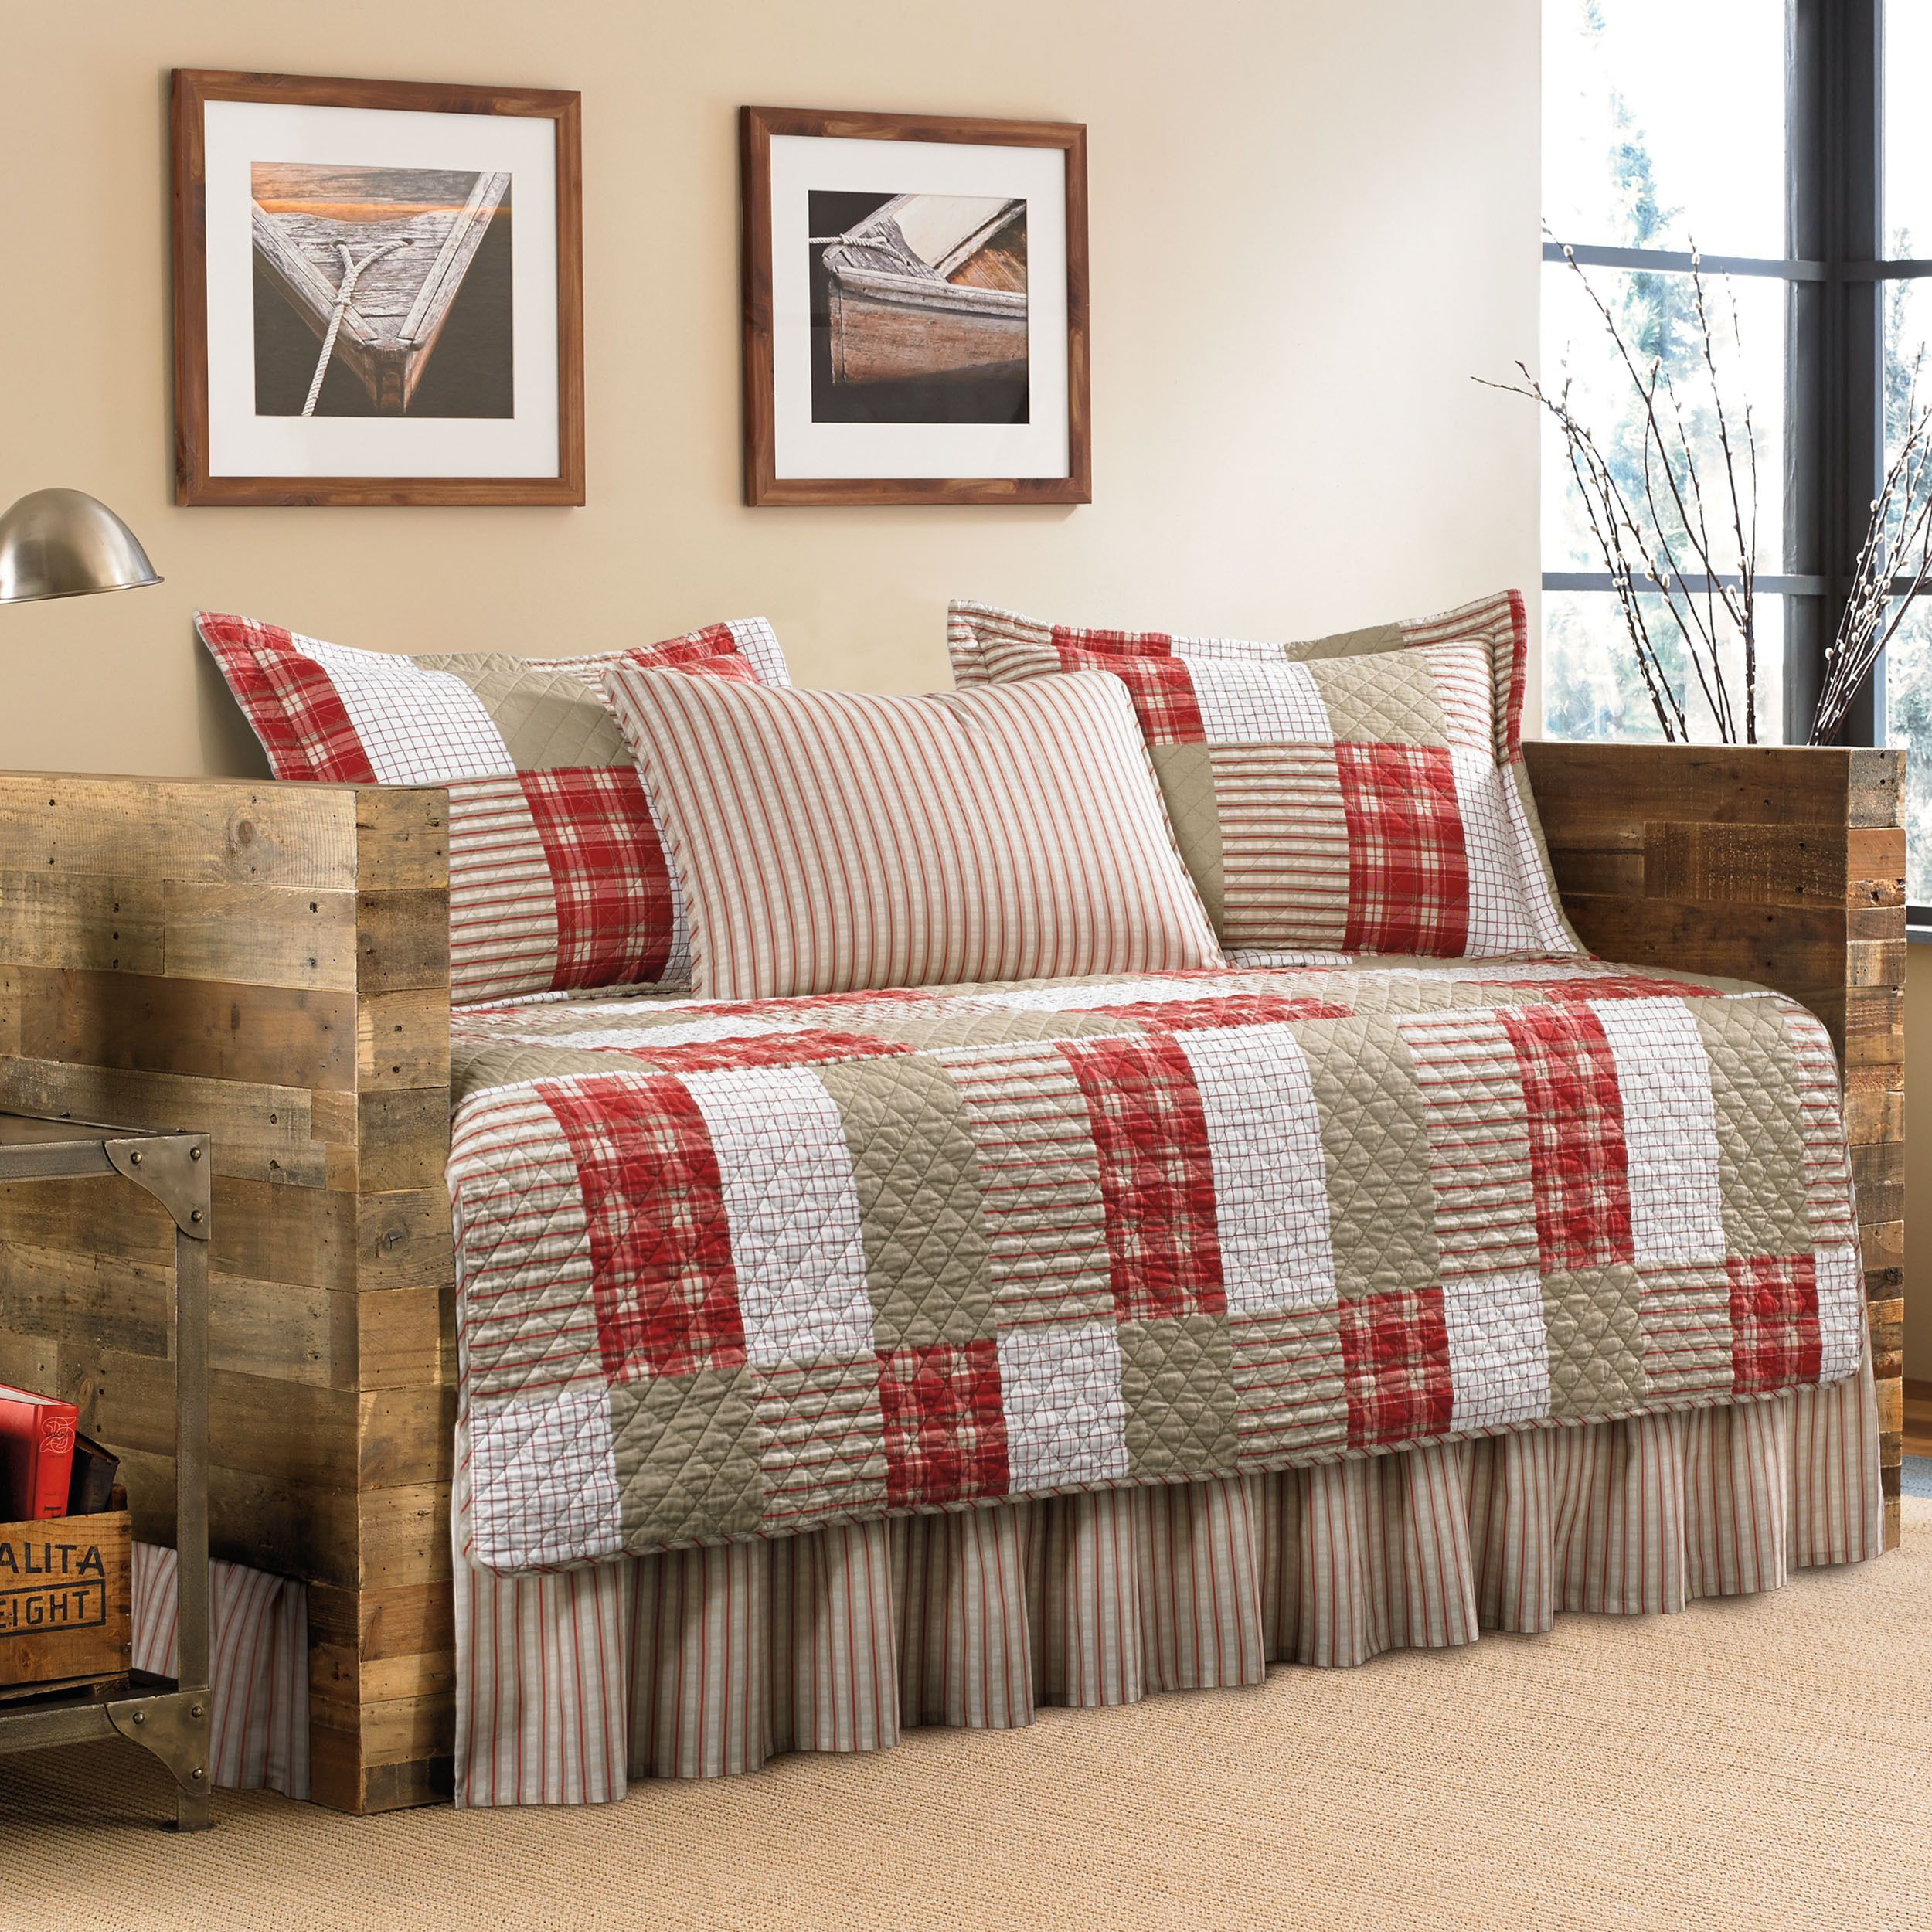 Add Style To Your Daybed With This Beautiful Daybed Cover